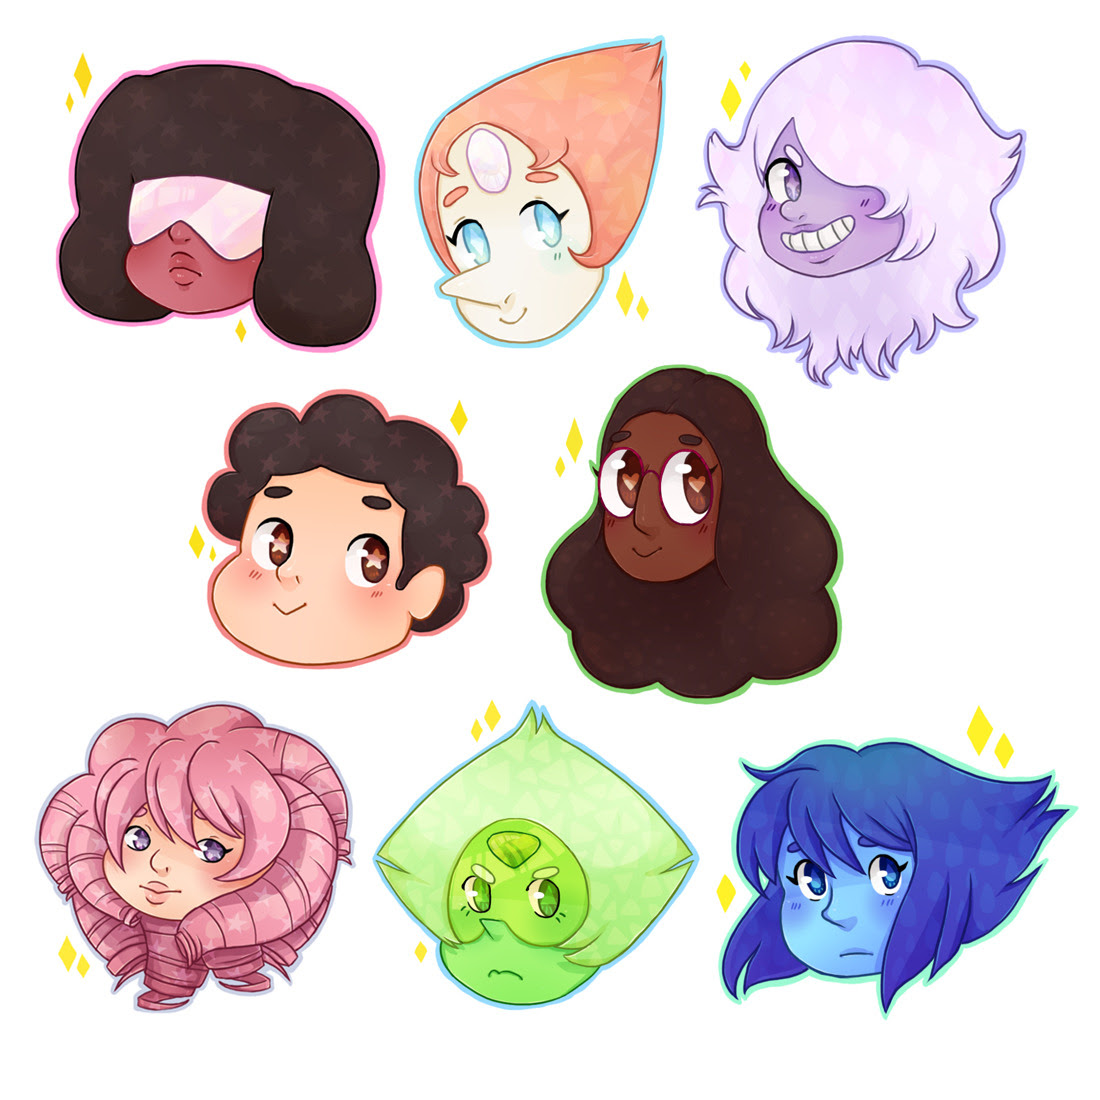 rocks with feelings: a sticker set 💎 ✨ you can acquire these @ mine etsy